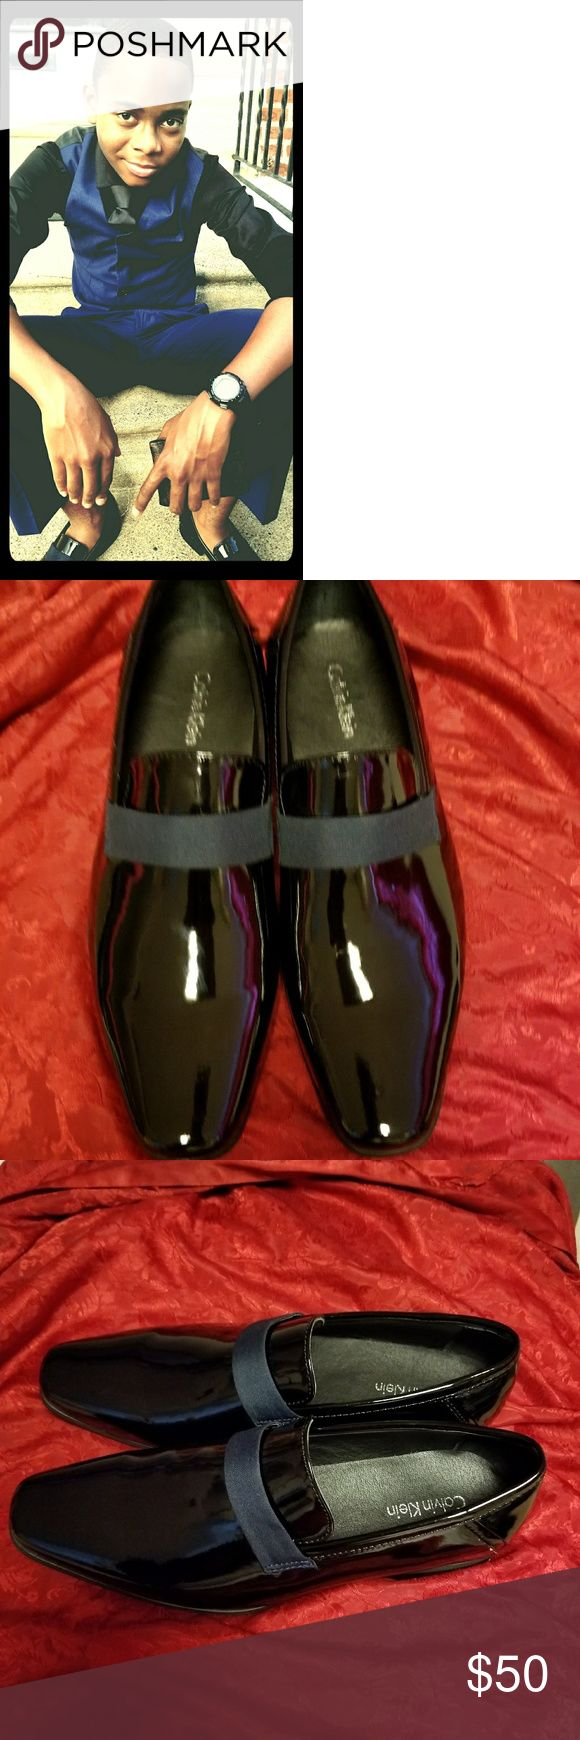 Men's Calvin Klein Patent Leather Shoes size 8.5 Black Patent Leather Shoes ...I only wore them once, when I was on a date with mom-dukes  Calvin Klein Shoes Loafers & Slip-Ons